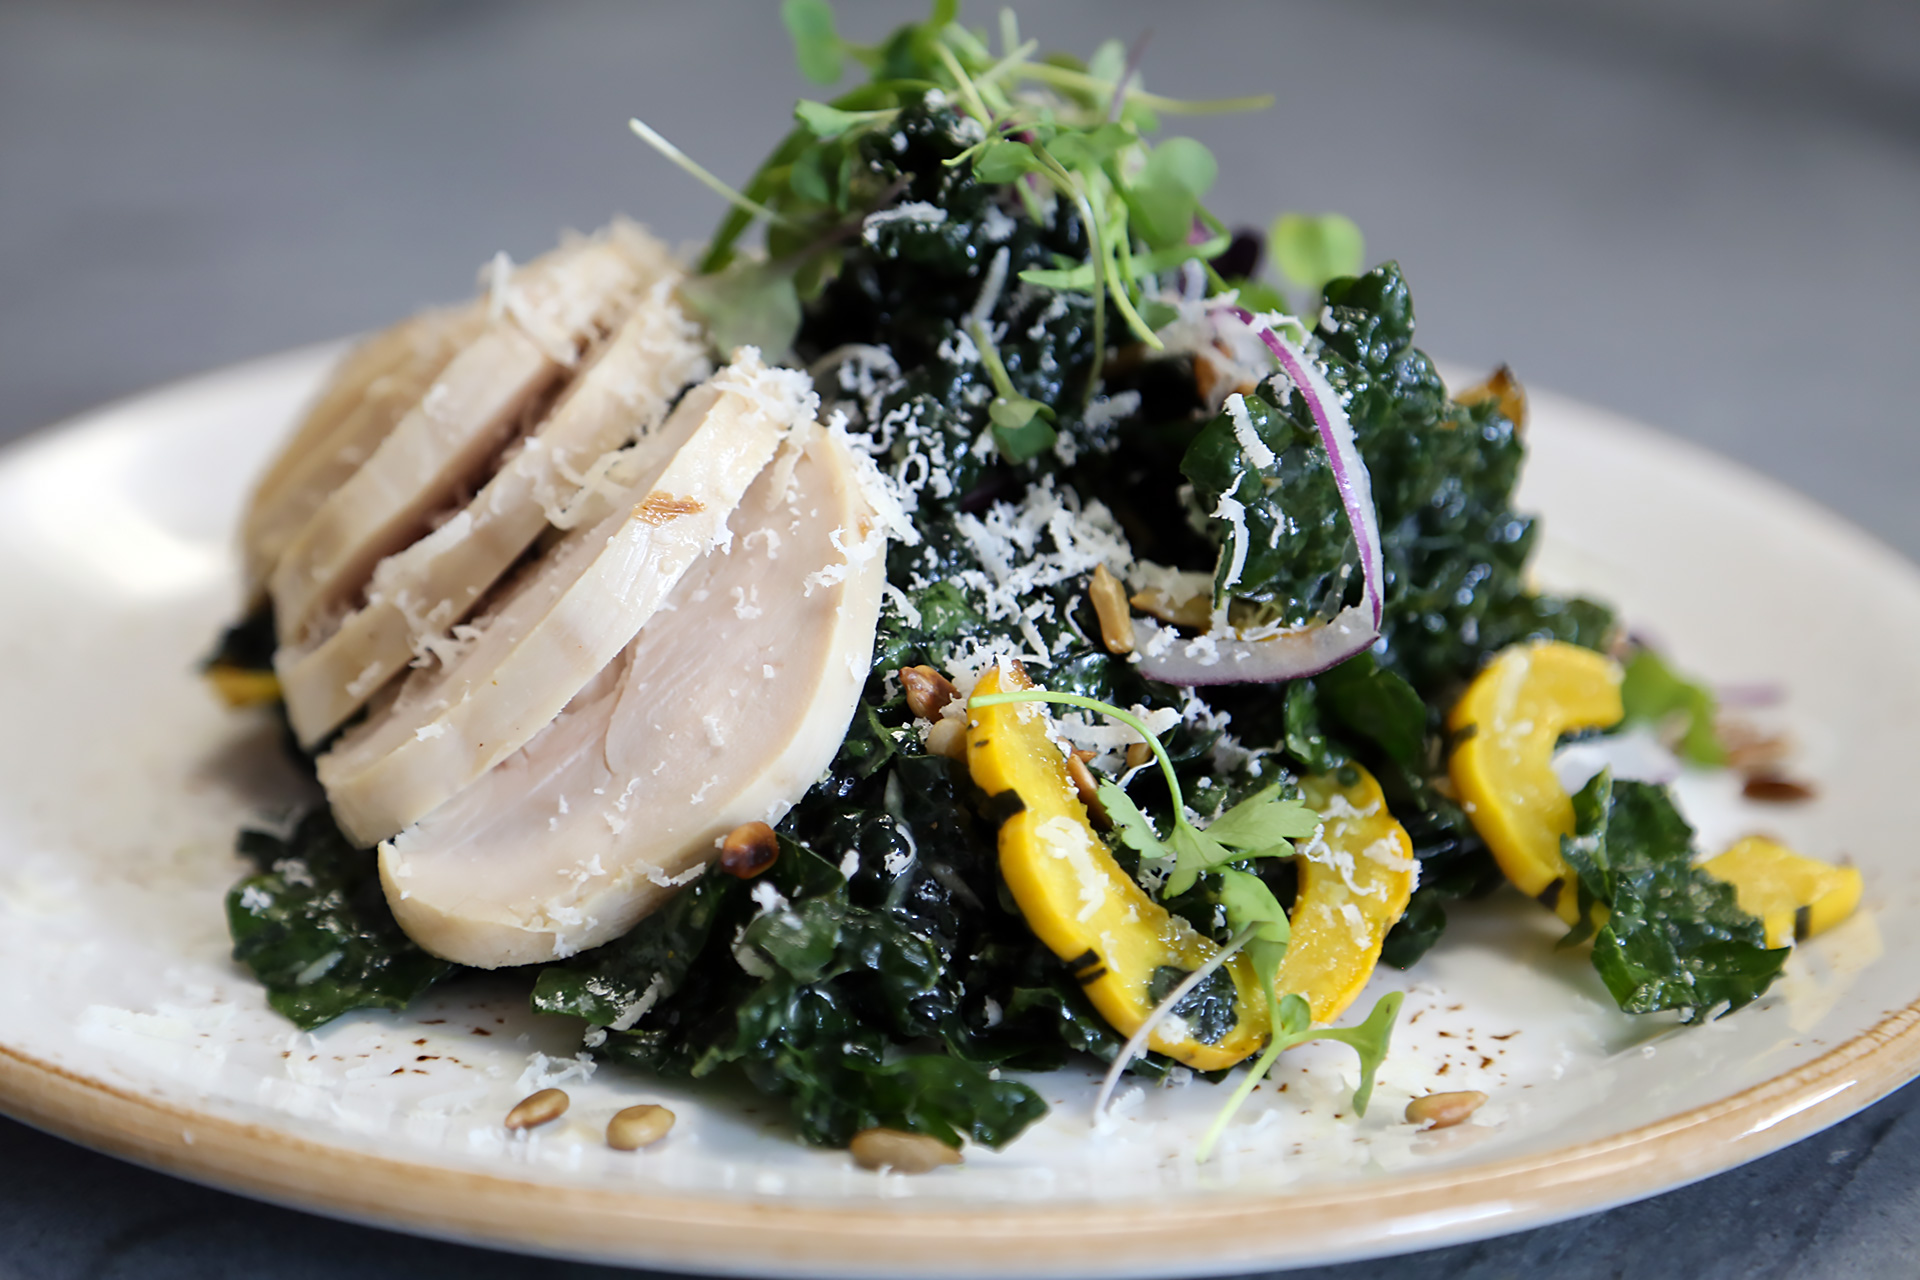 Kale Salad with Parmigiano-Reggiano, Preserved Lemon Vinaigrette with Chicken